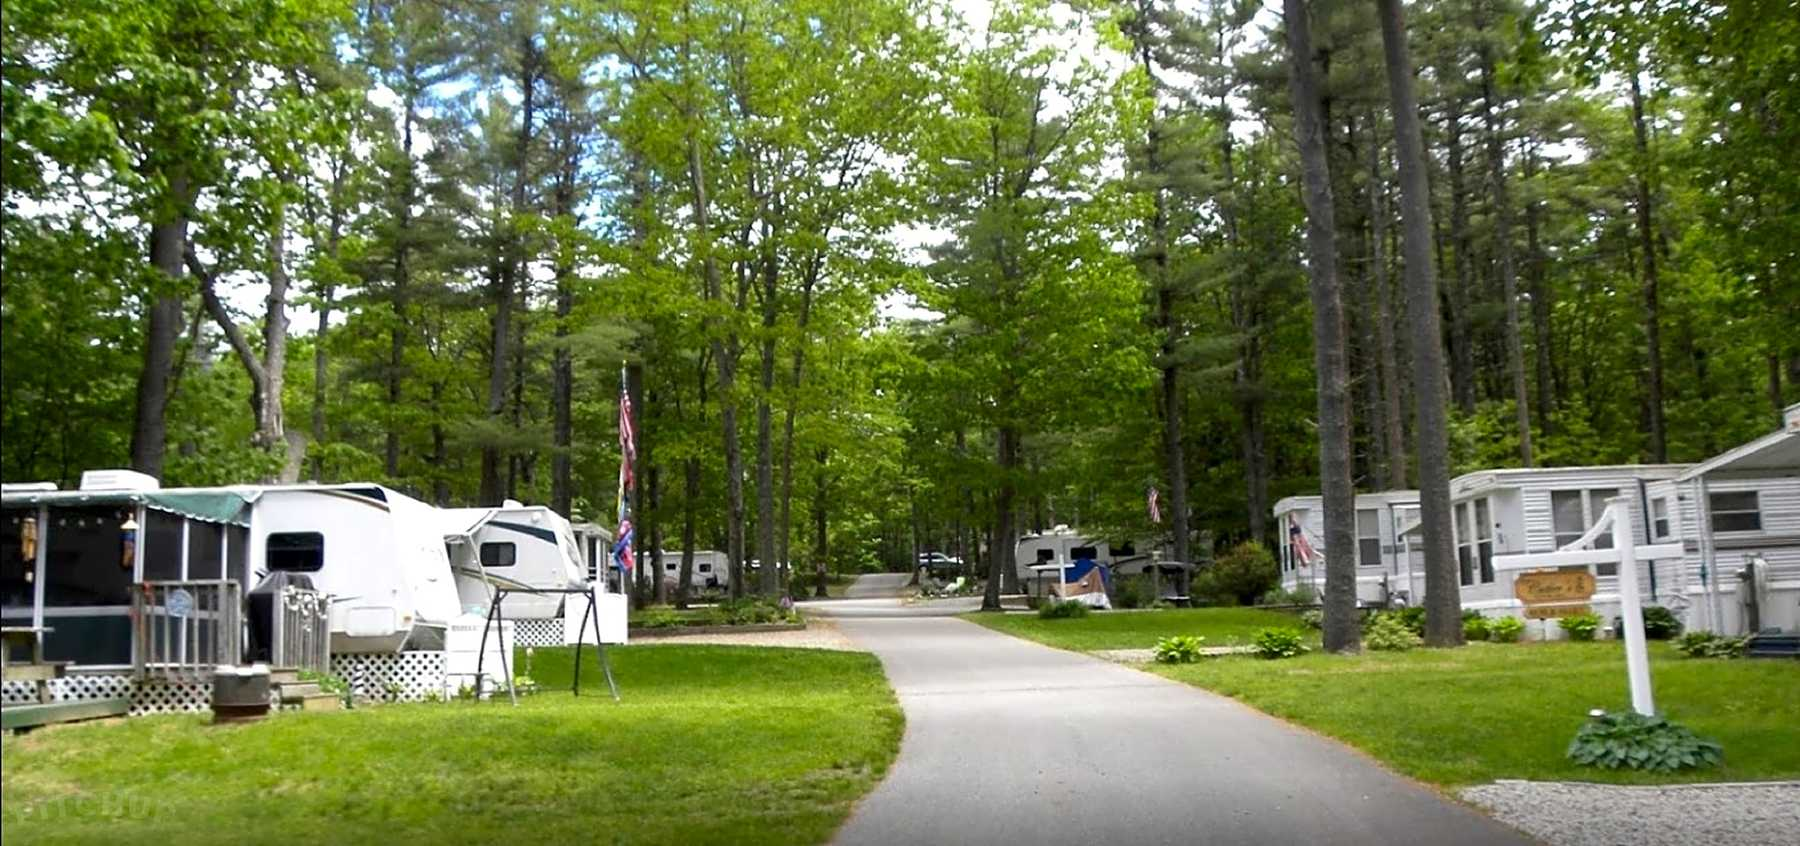 Wild Acres RV Resort and Campground